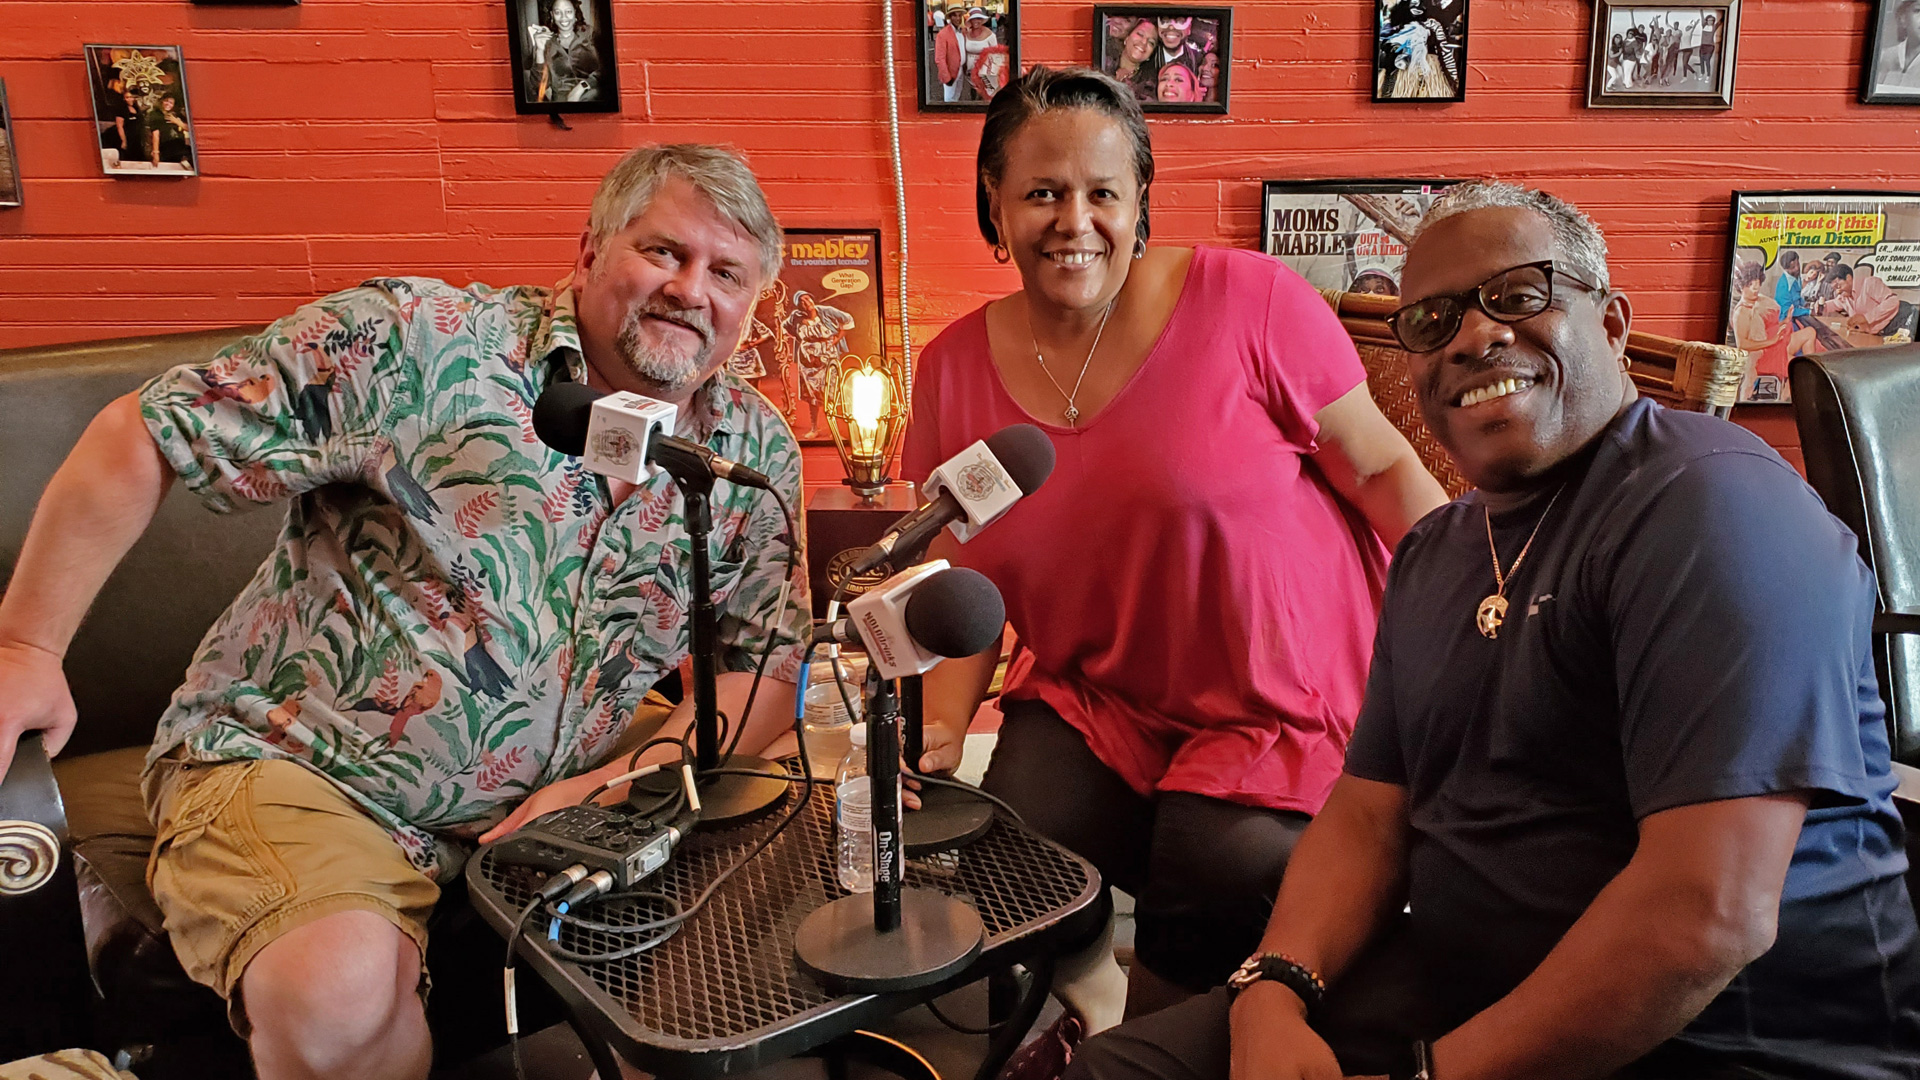 NOLADrinks Show - 7-1-19 - Bayou Road - NOLA Neighborhoods - Bryan Dias of The NOLADrinks Show, Kelder Summers of Whiskey & Sticks, and Mark Lawes of Half Shell on the Bayou.